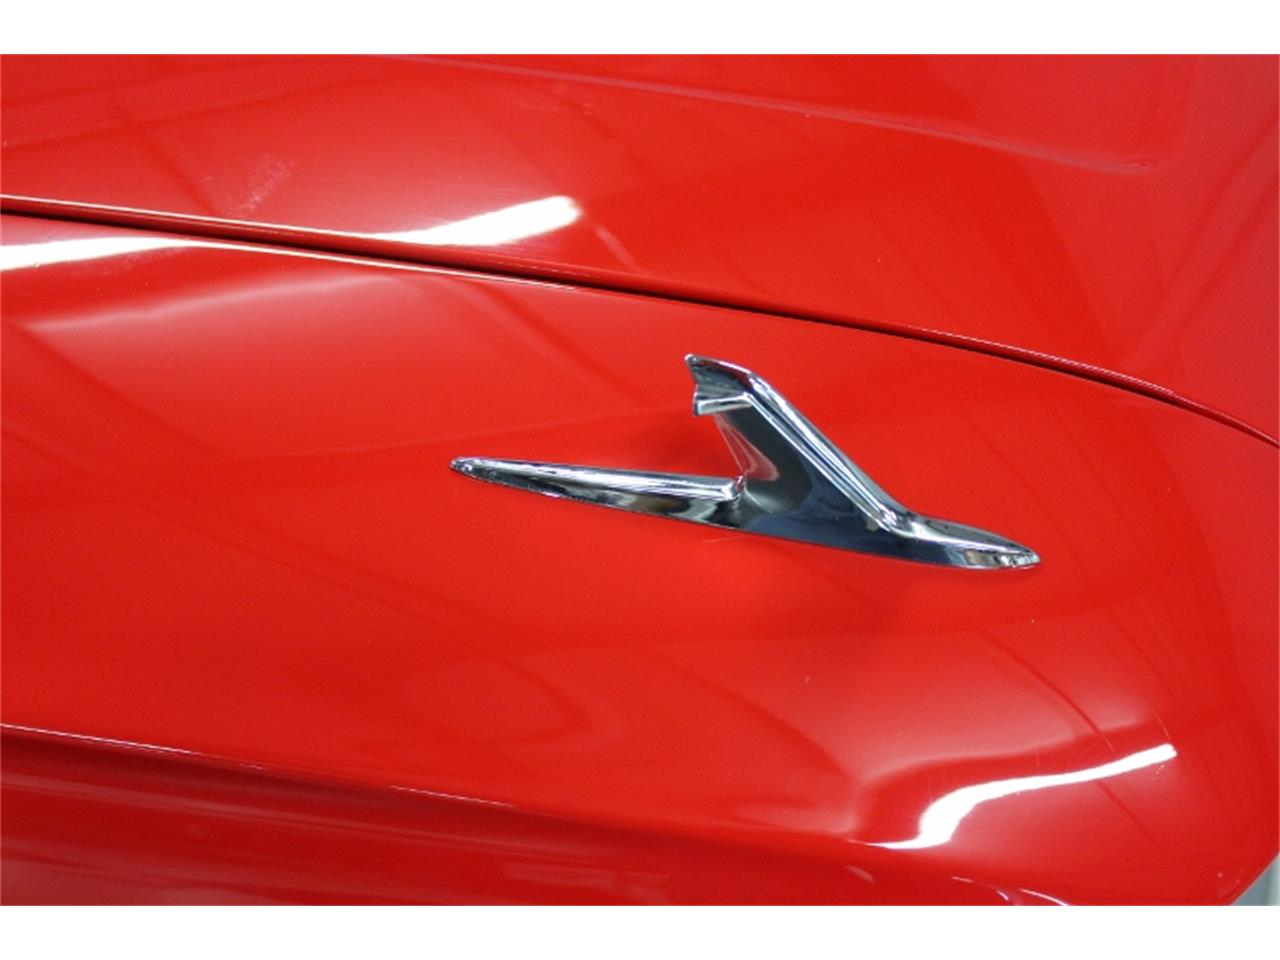 Large Picture of '61 Chevrolet Impala located in North Carolina Offered by East Coast Classic Cars - J60W